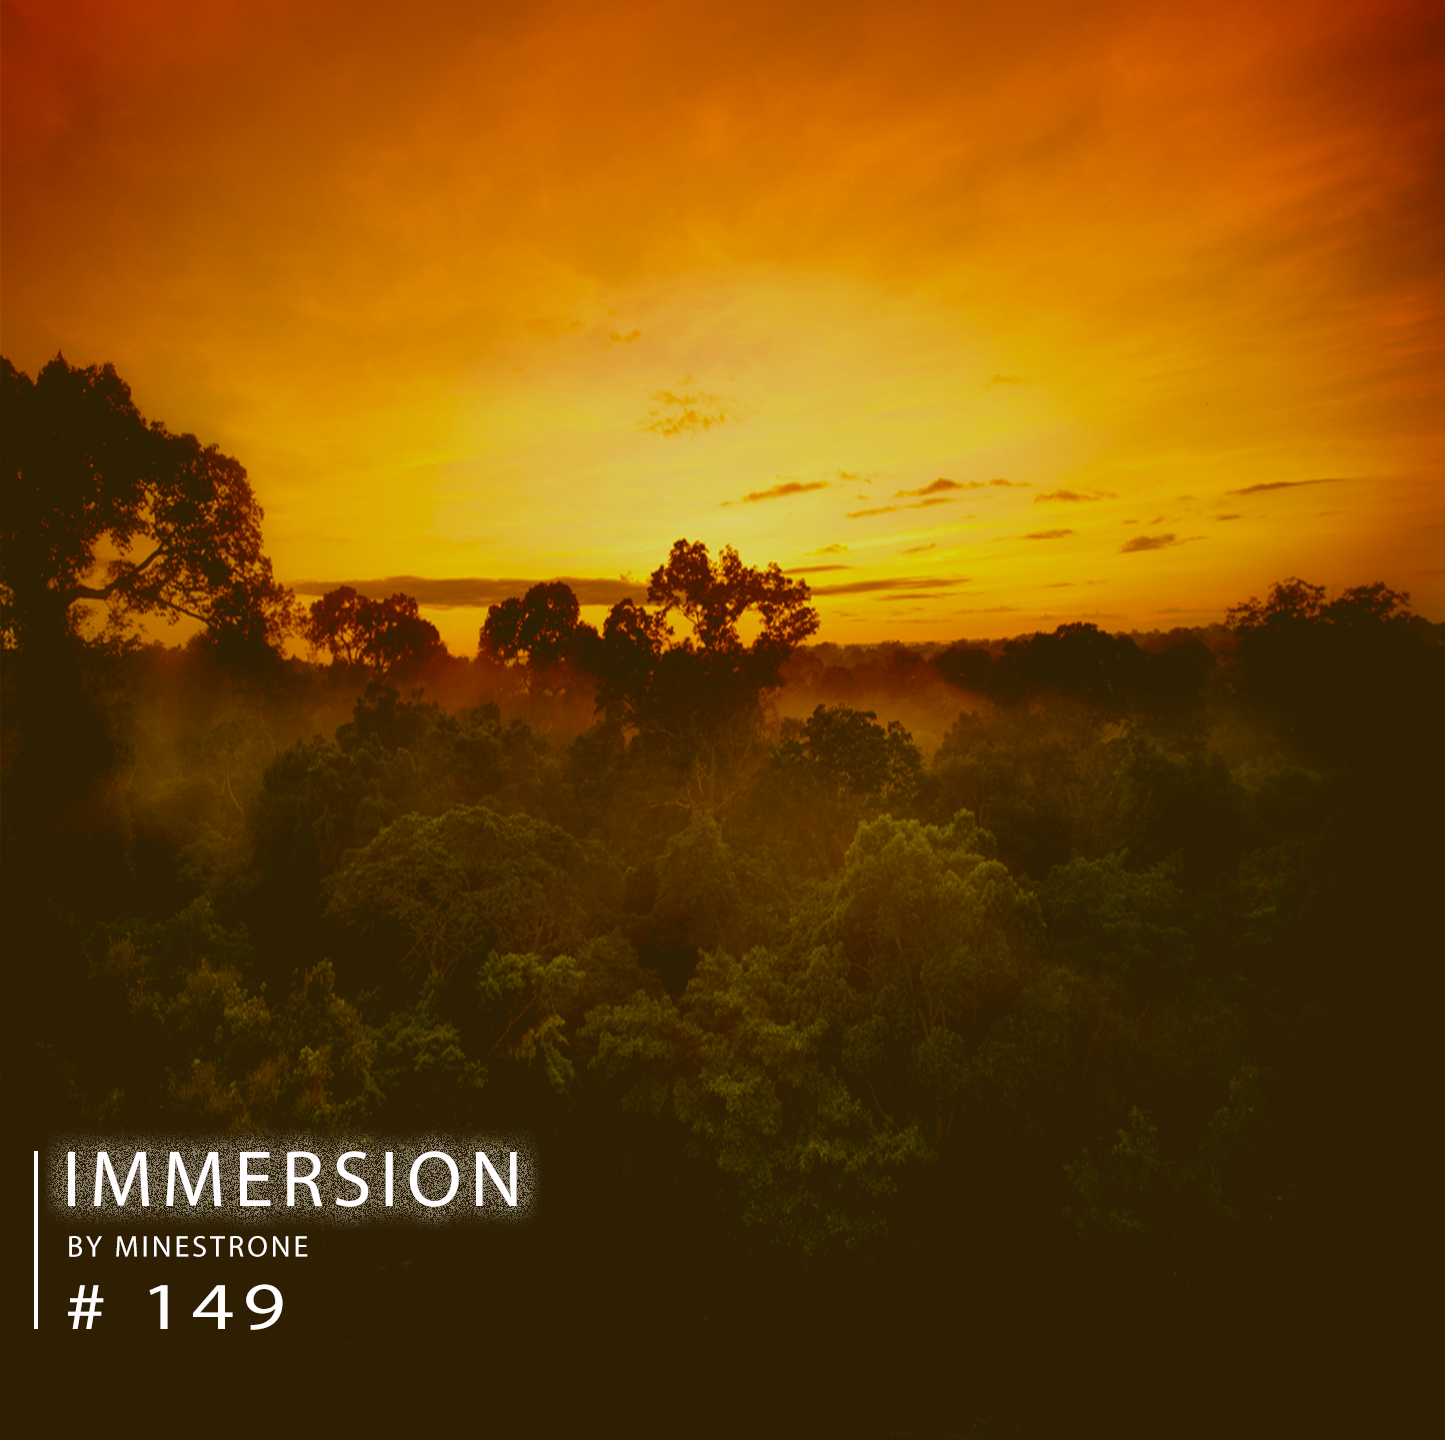 Immersion :: Episode 149 (aired on April 13th, 2020) banner logo